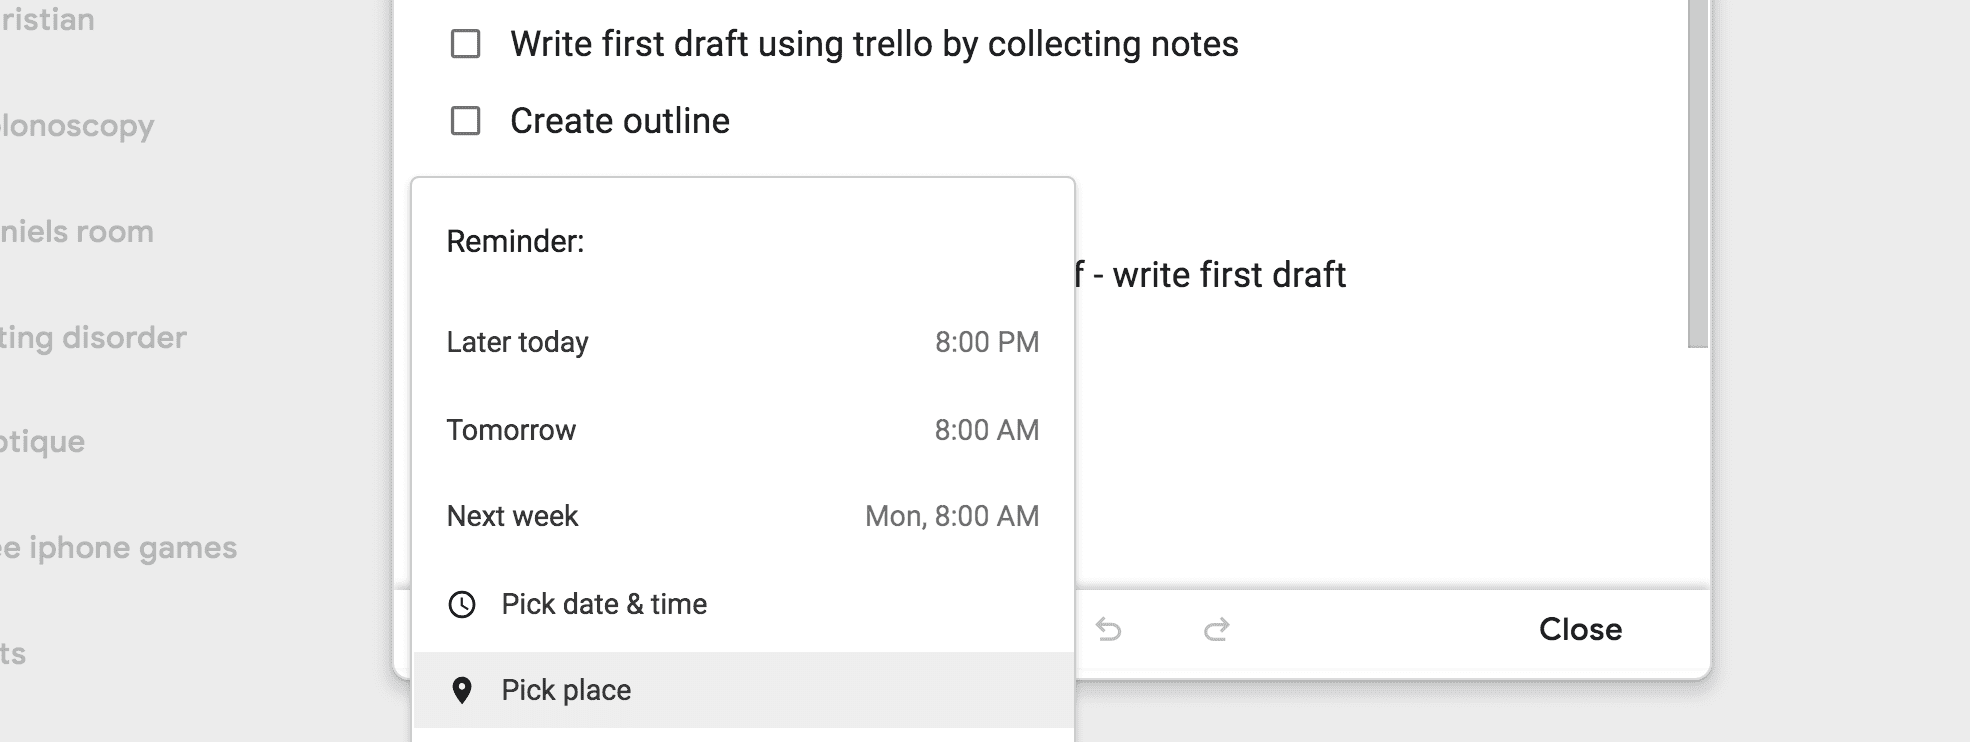 Google Keep Keeps Your Notes and Keeps You On Task